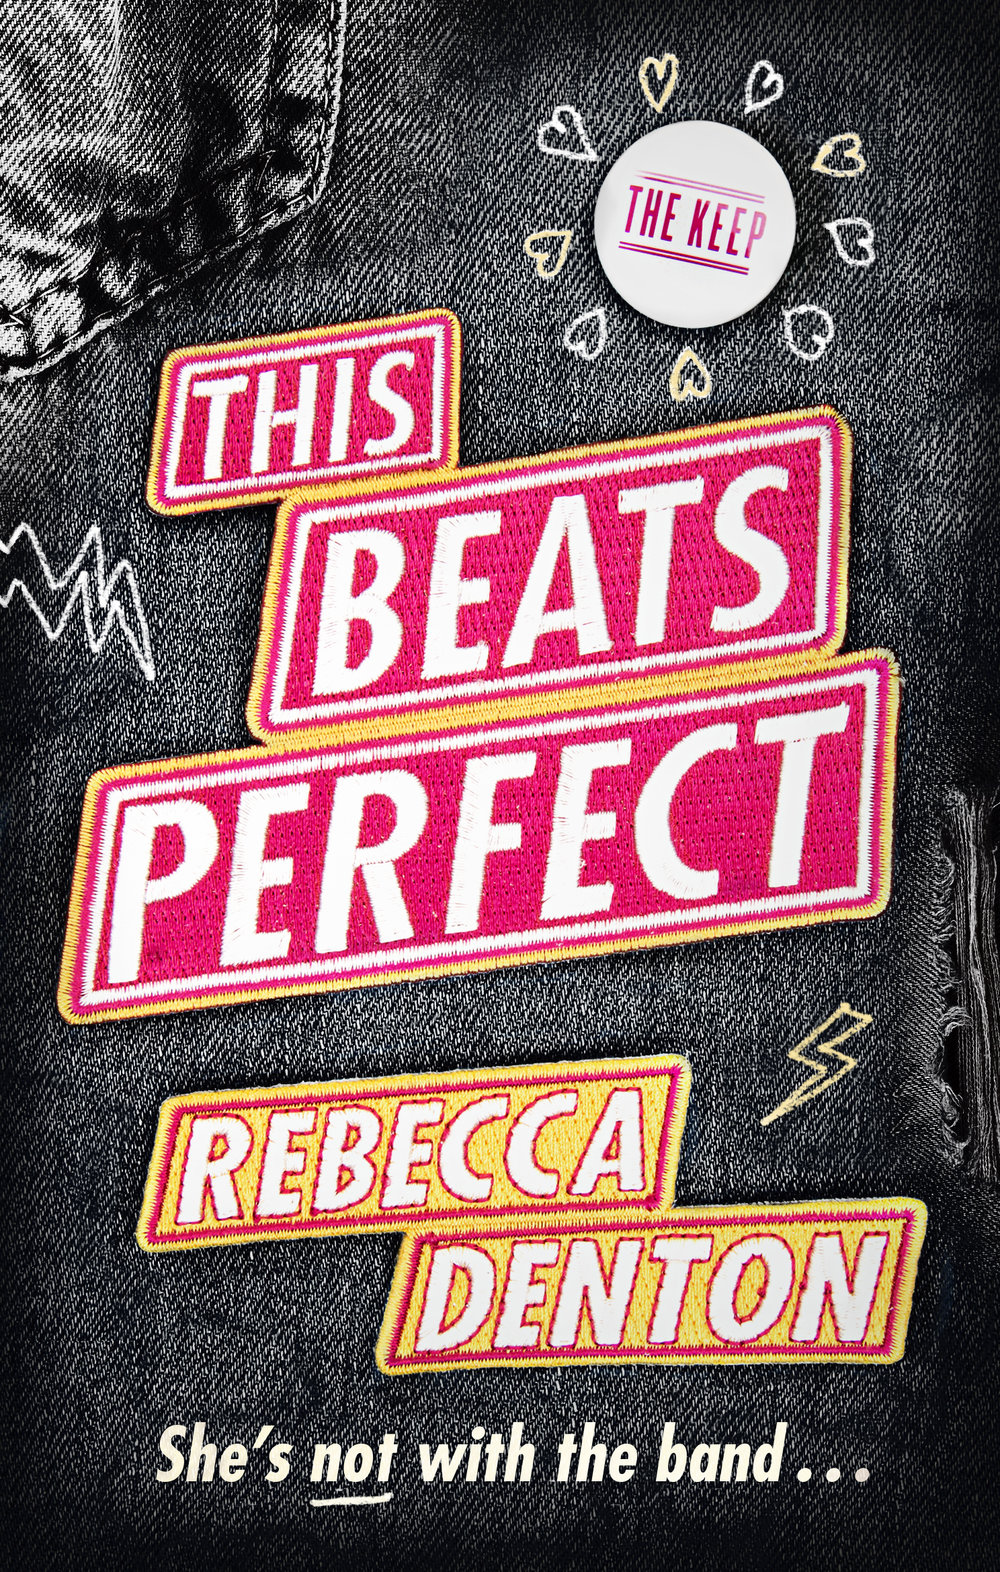 THIS BEATS PERFECT Contemporary YA, 336 pages Atom, Feb 2017 Amelie Ayres has impeccable taste in music. Bowie. Bush. Bob. So when she finds herself backstage at The Keep's only UK gig she expects to hate it; after all they are the world's most tragic band. But when lead singer, 'Maxx', is not dressed up as a cross between Elvis and a My Little Pony, he is actually rather normal, talented and has creative struggles not too dissimilar to her own. Immaculate's a concept. Flawless is fake. But just sometimes music - and hearts - can rock a perfect beat.